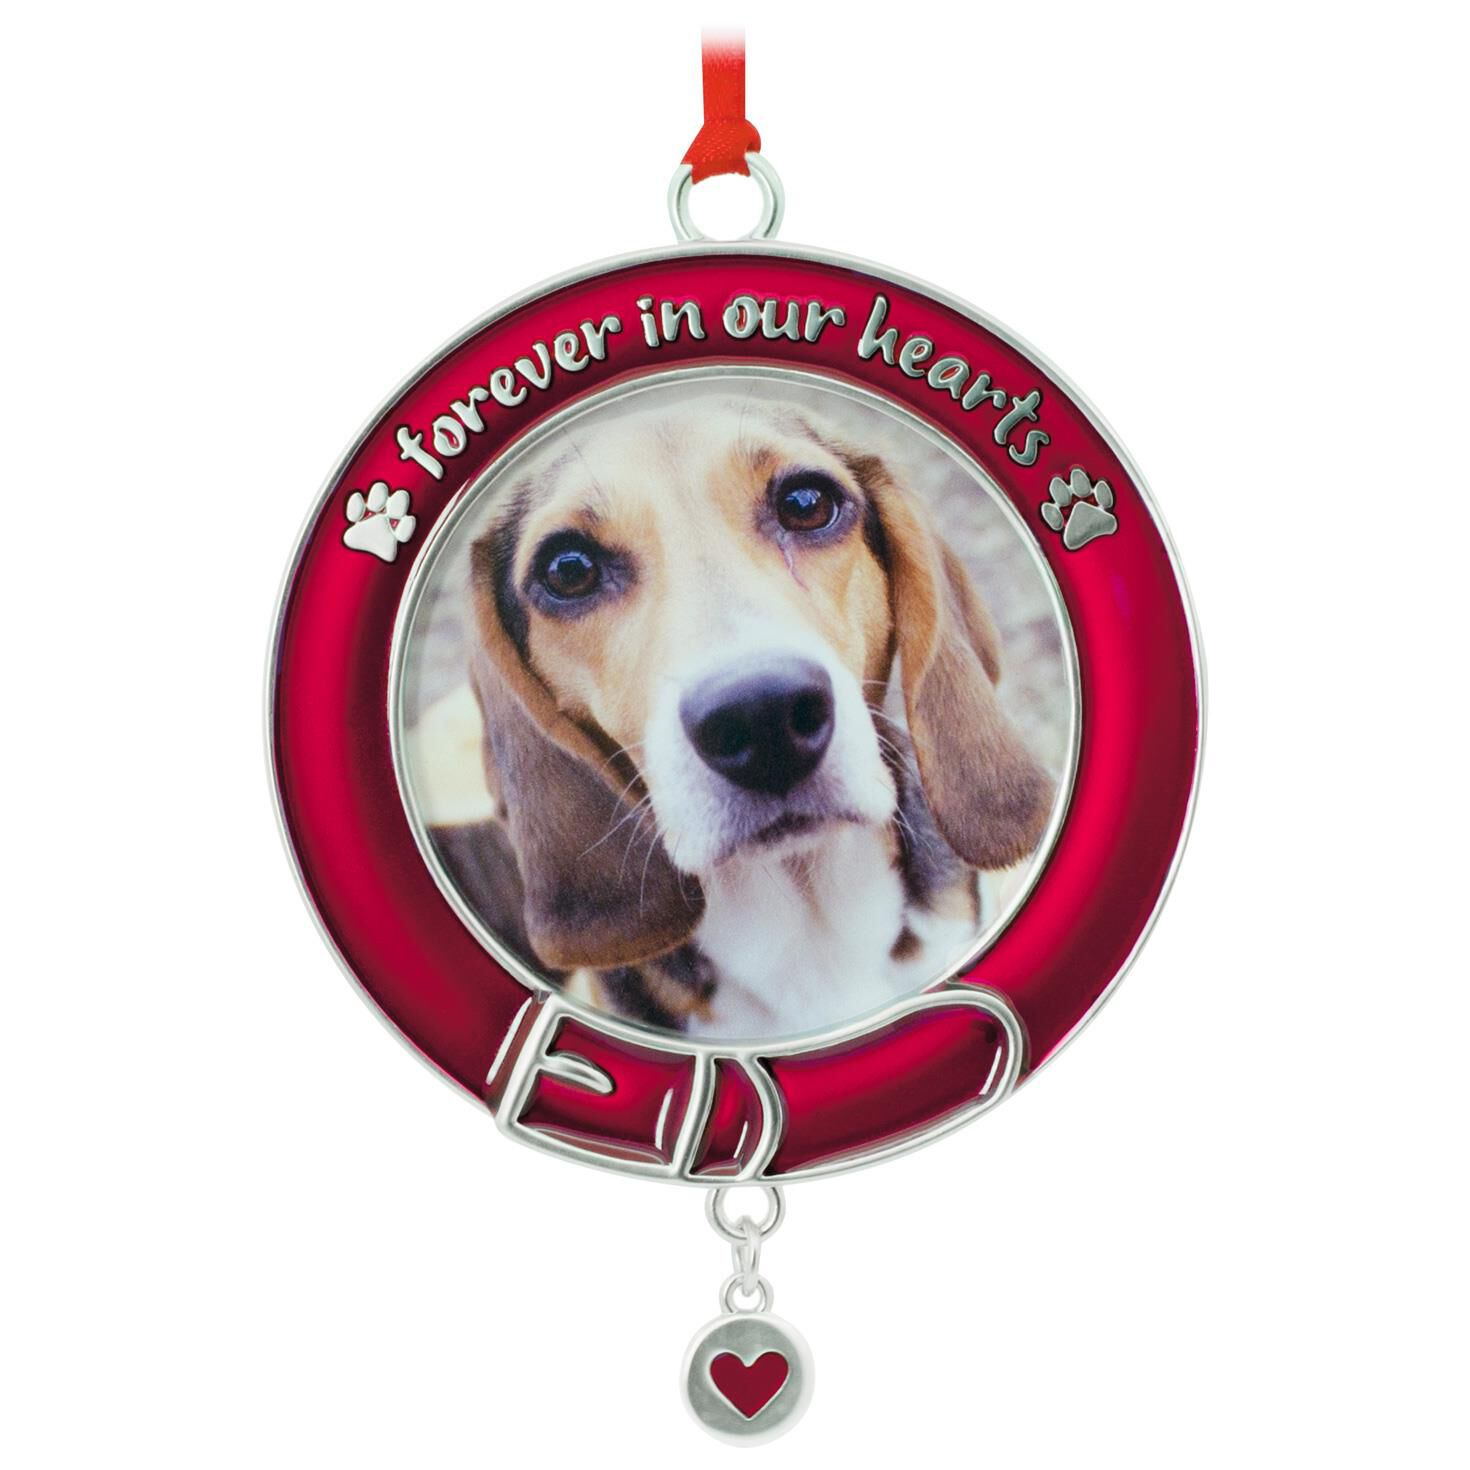 Pet memorial picture frame hallmark ornament gift ornaments pet memorial picture frame hallmark ornament gift ornaments hallmark jeuxipadfo Choice Image